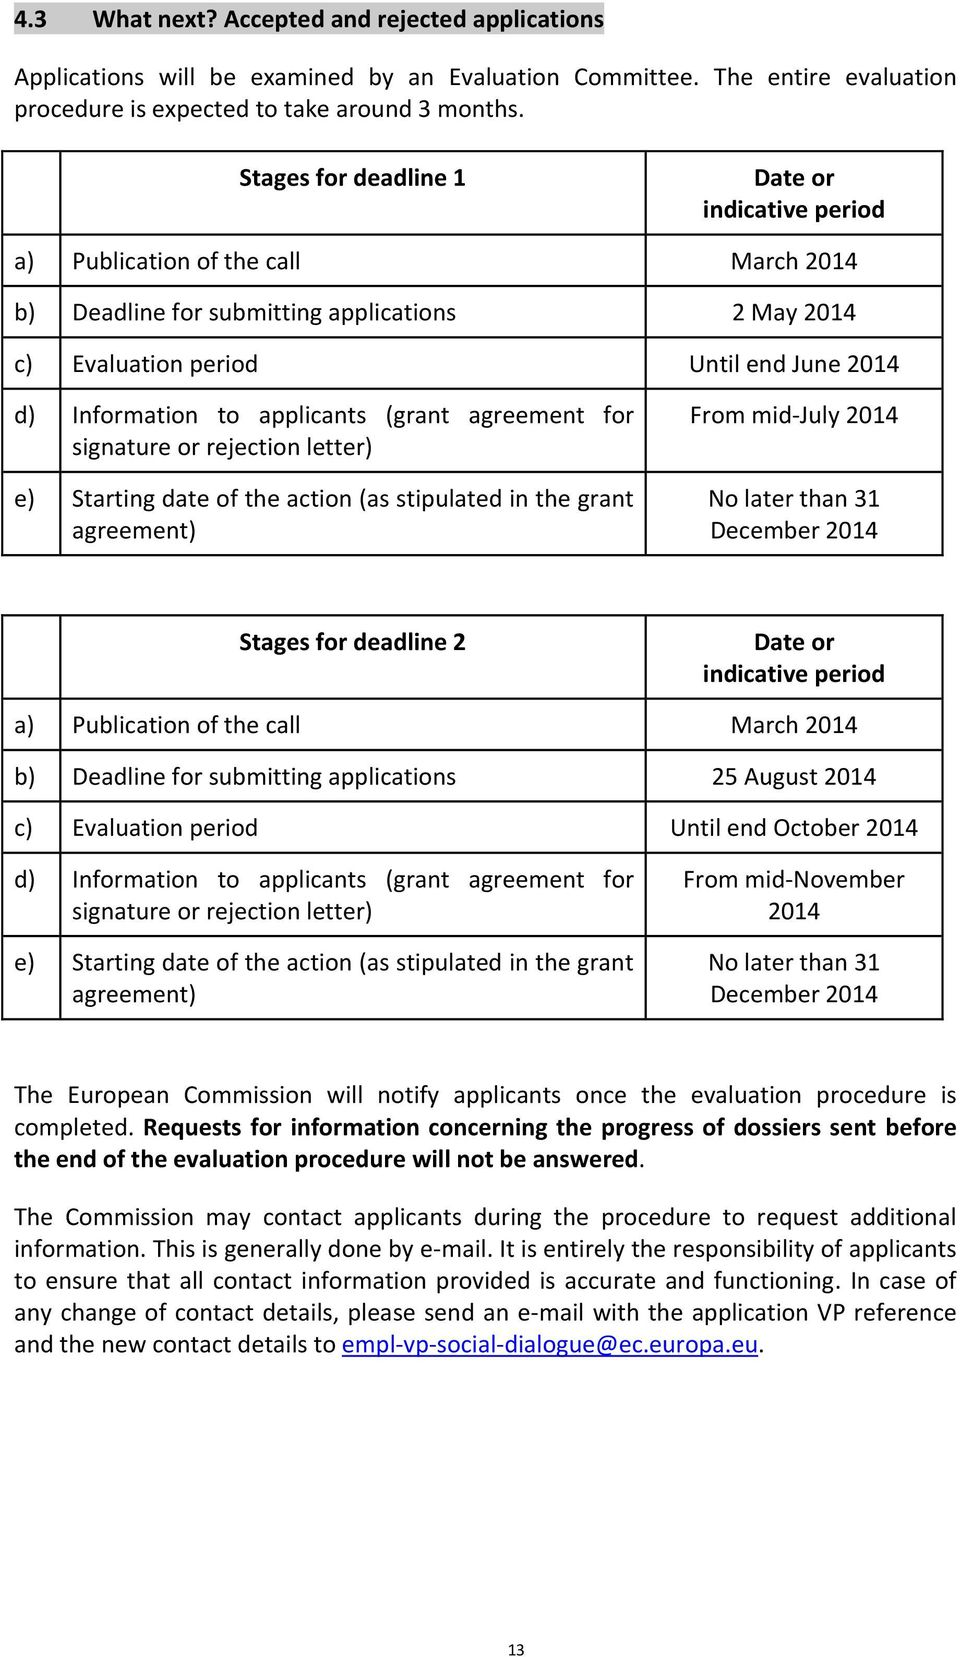 applicants (grant agreement for signature or rejection letter) e) Starting date of the action (as stipulated in the grant agreement) From mid-july 2014 No later than 31 December 2014 Stages for